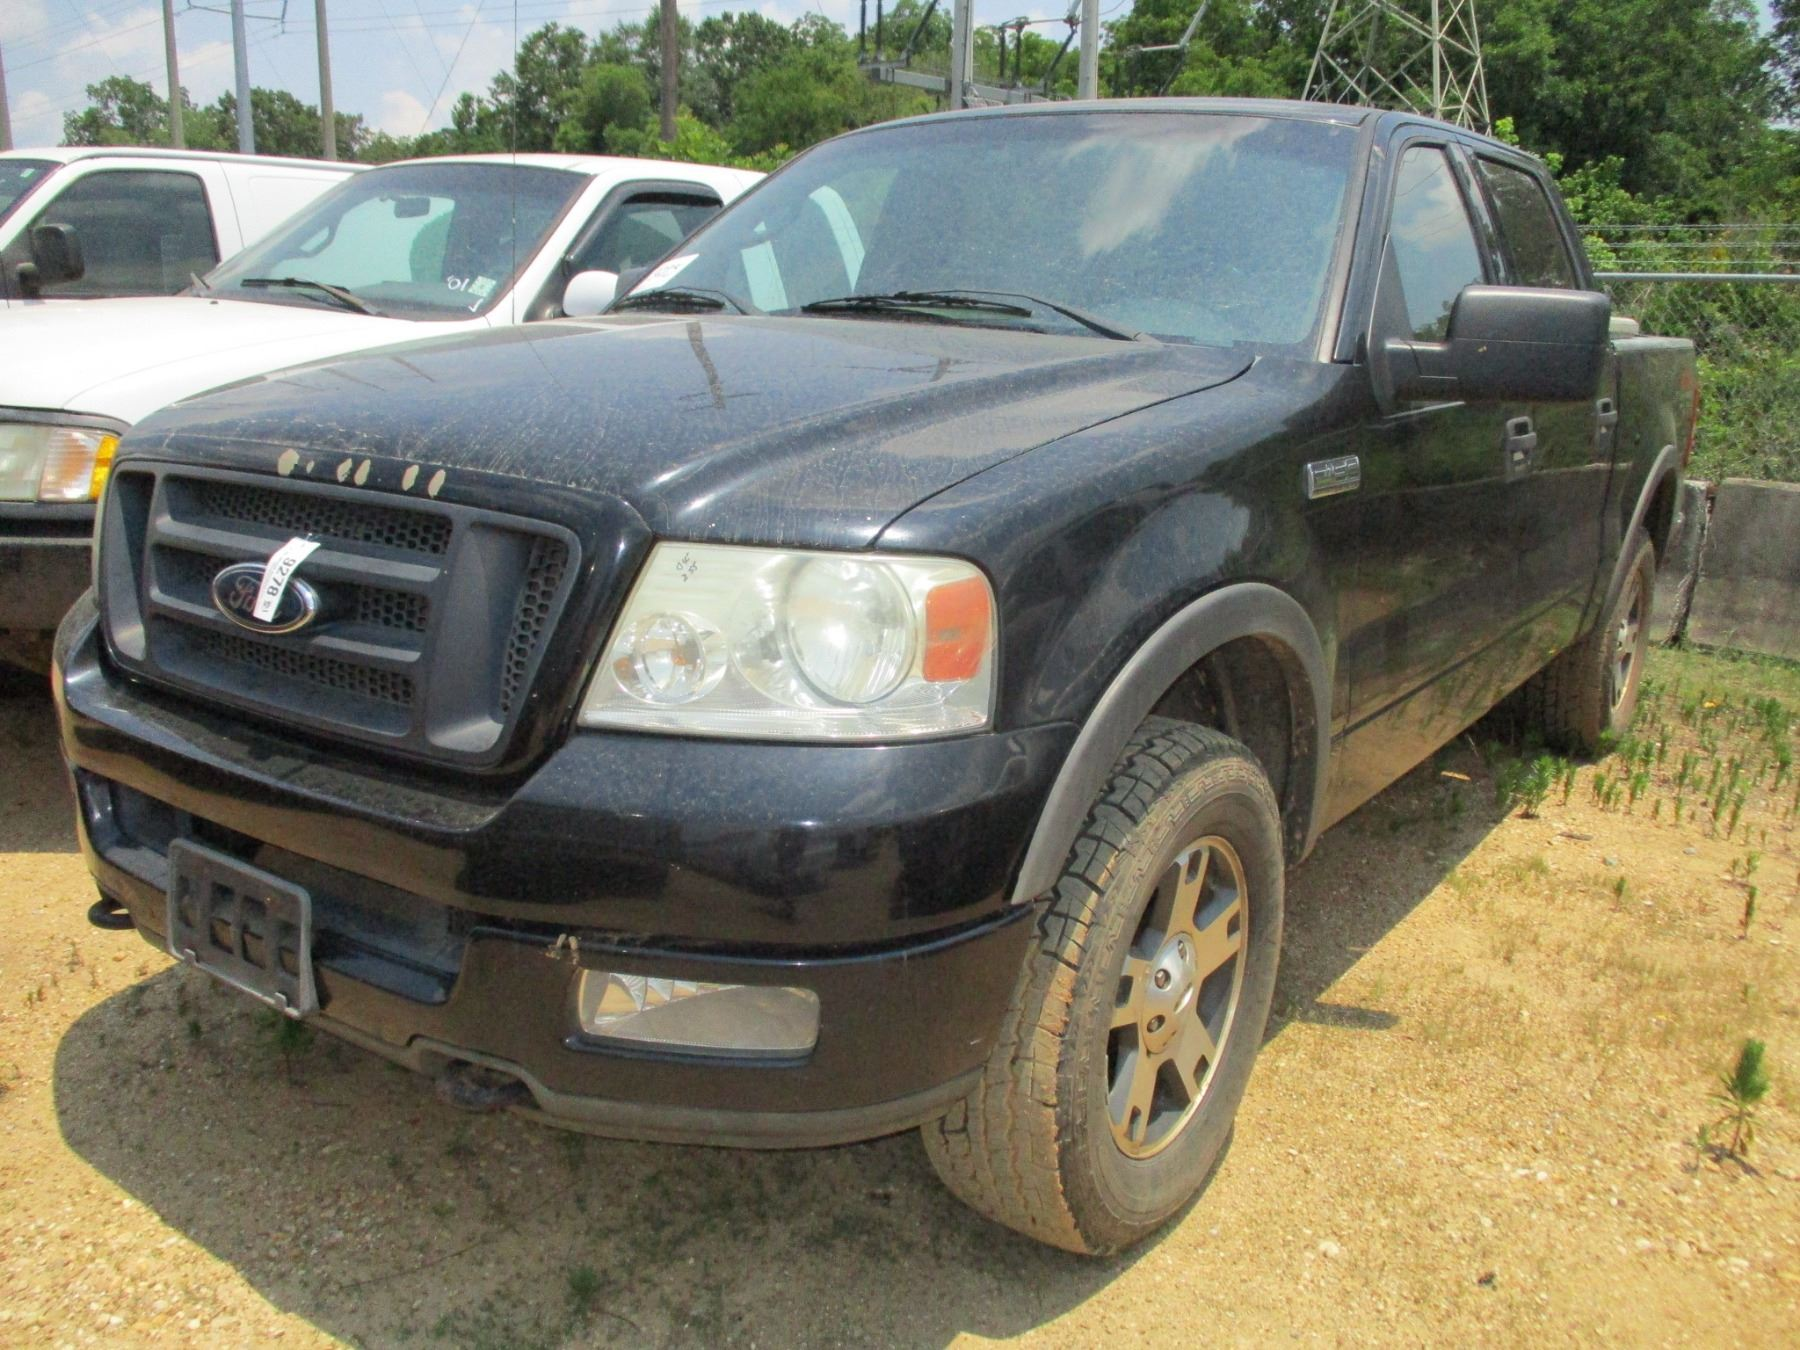 medium resolution of image 1 2004 ford f150 fx4 pick up vin sn 1ftpw14594kc30932